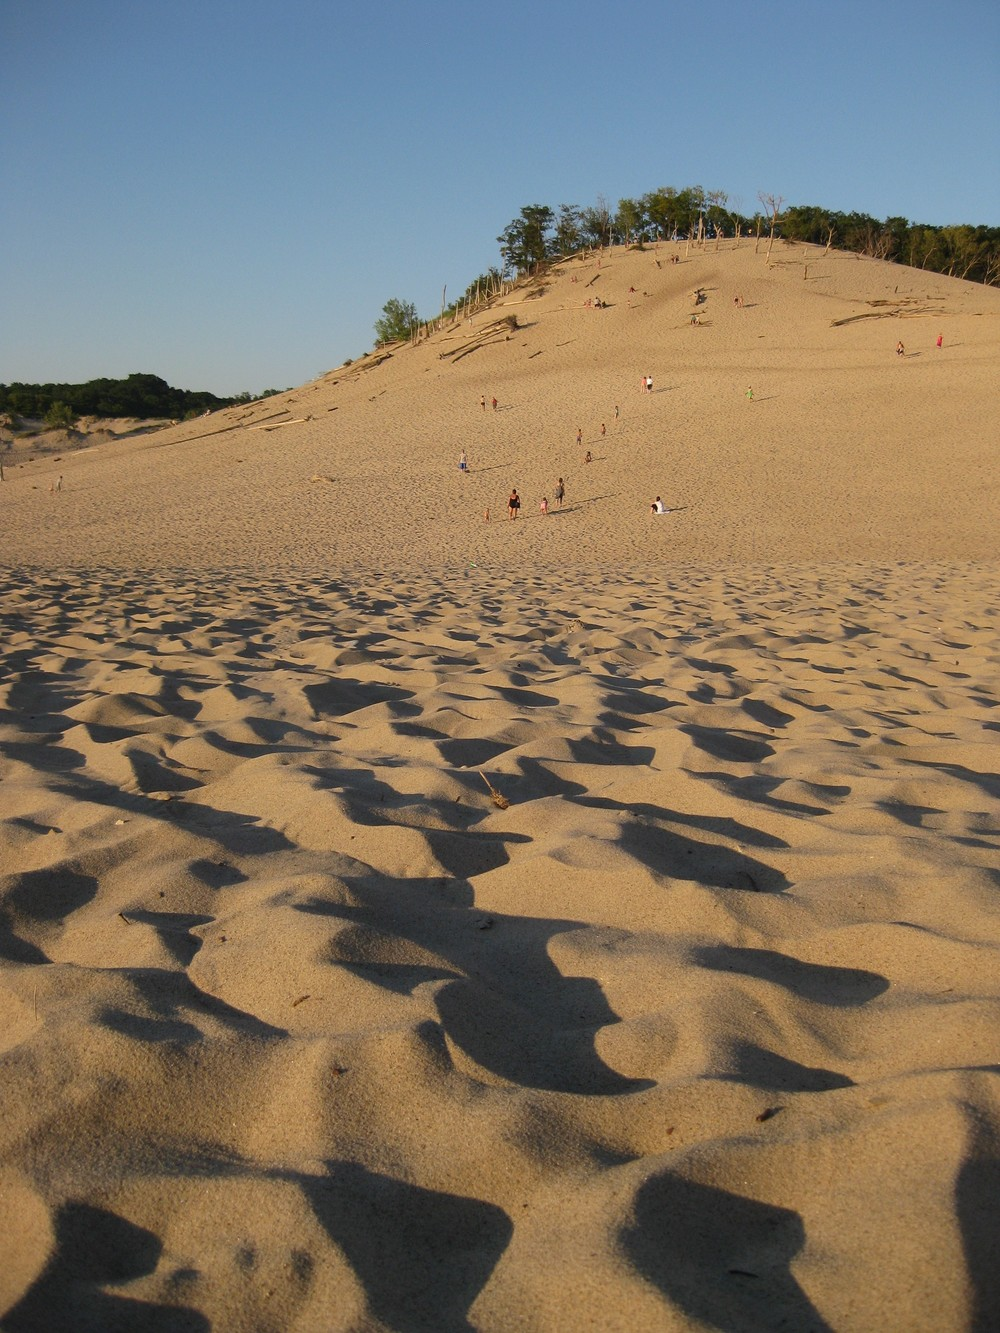 Starting the climb up the dune